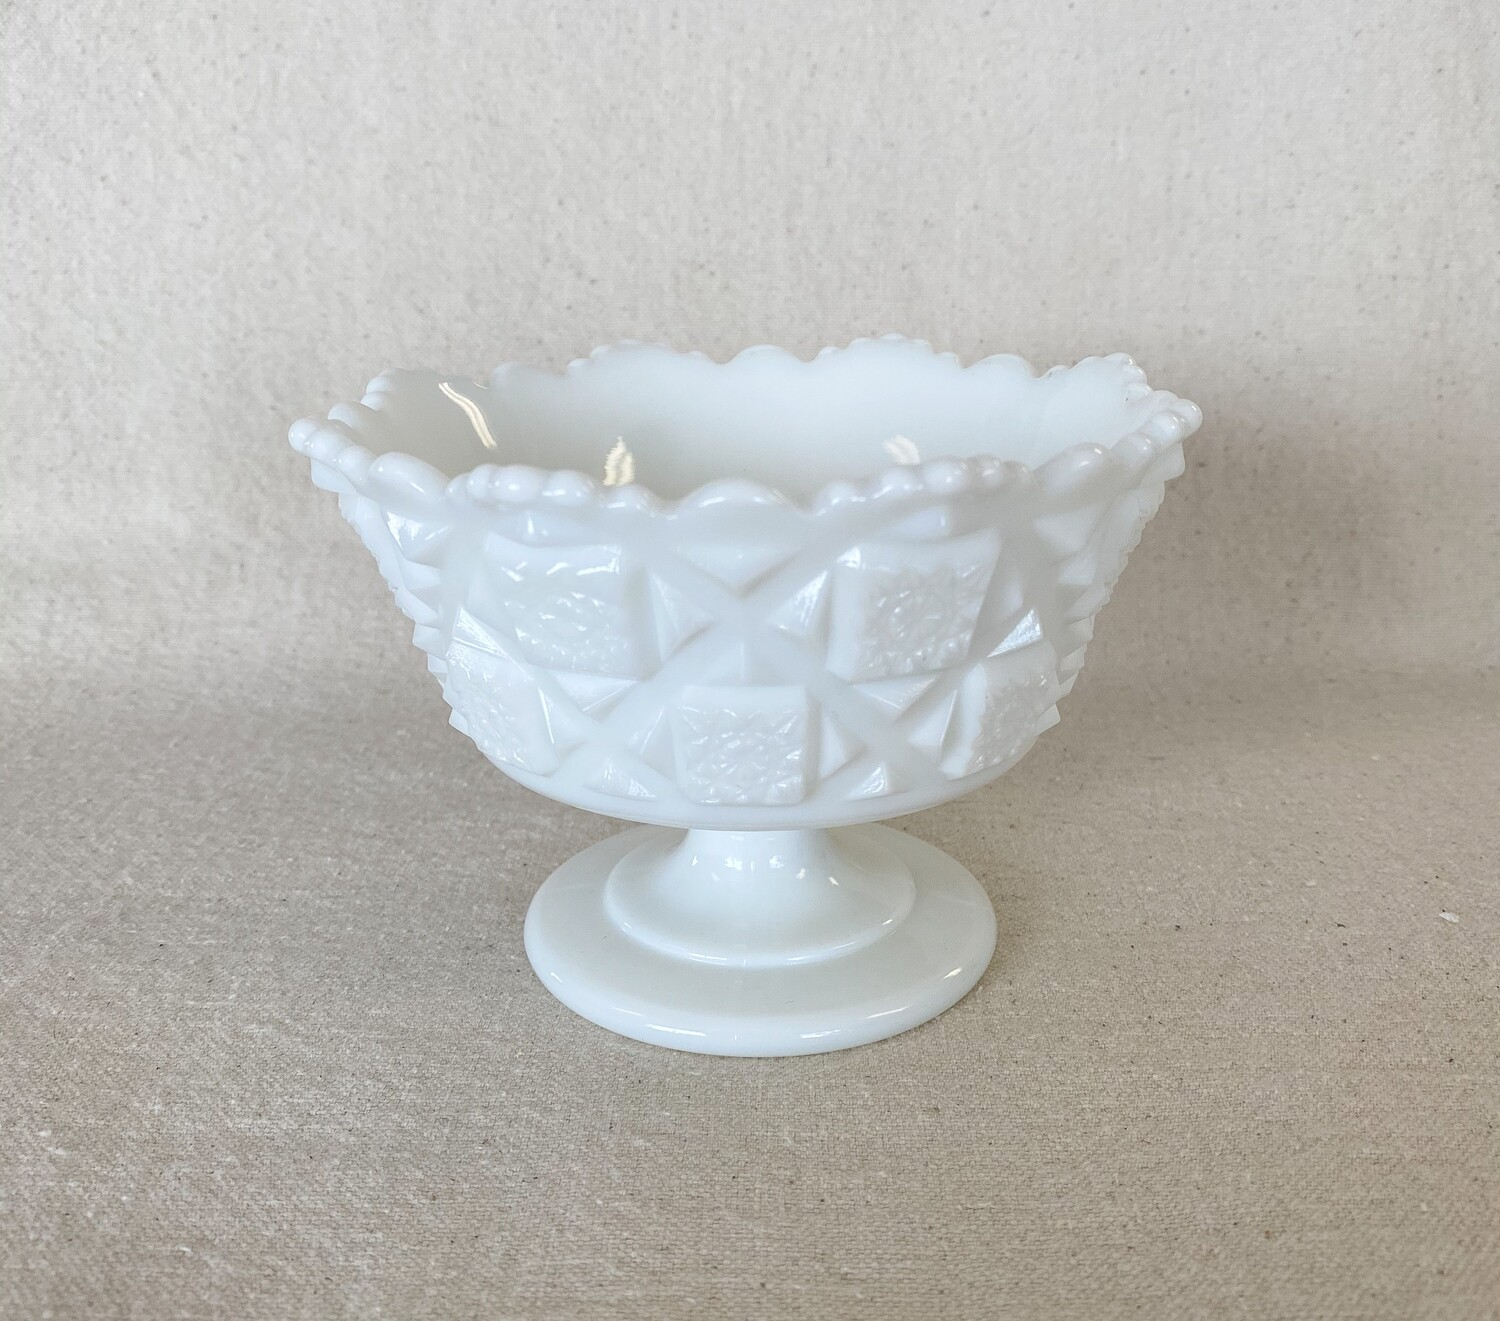 Westmoreland Old Quilt Milk Glass Footed Mayonnaise Bowl